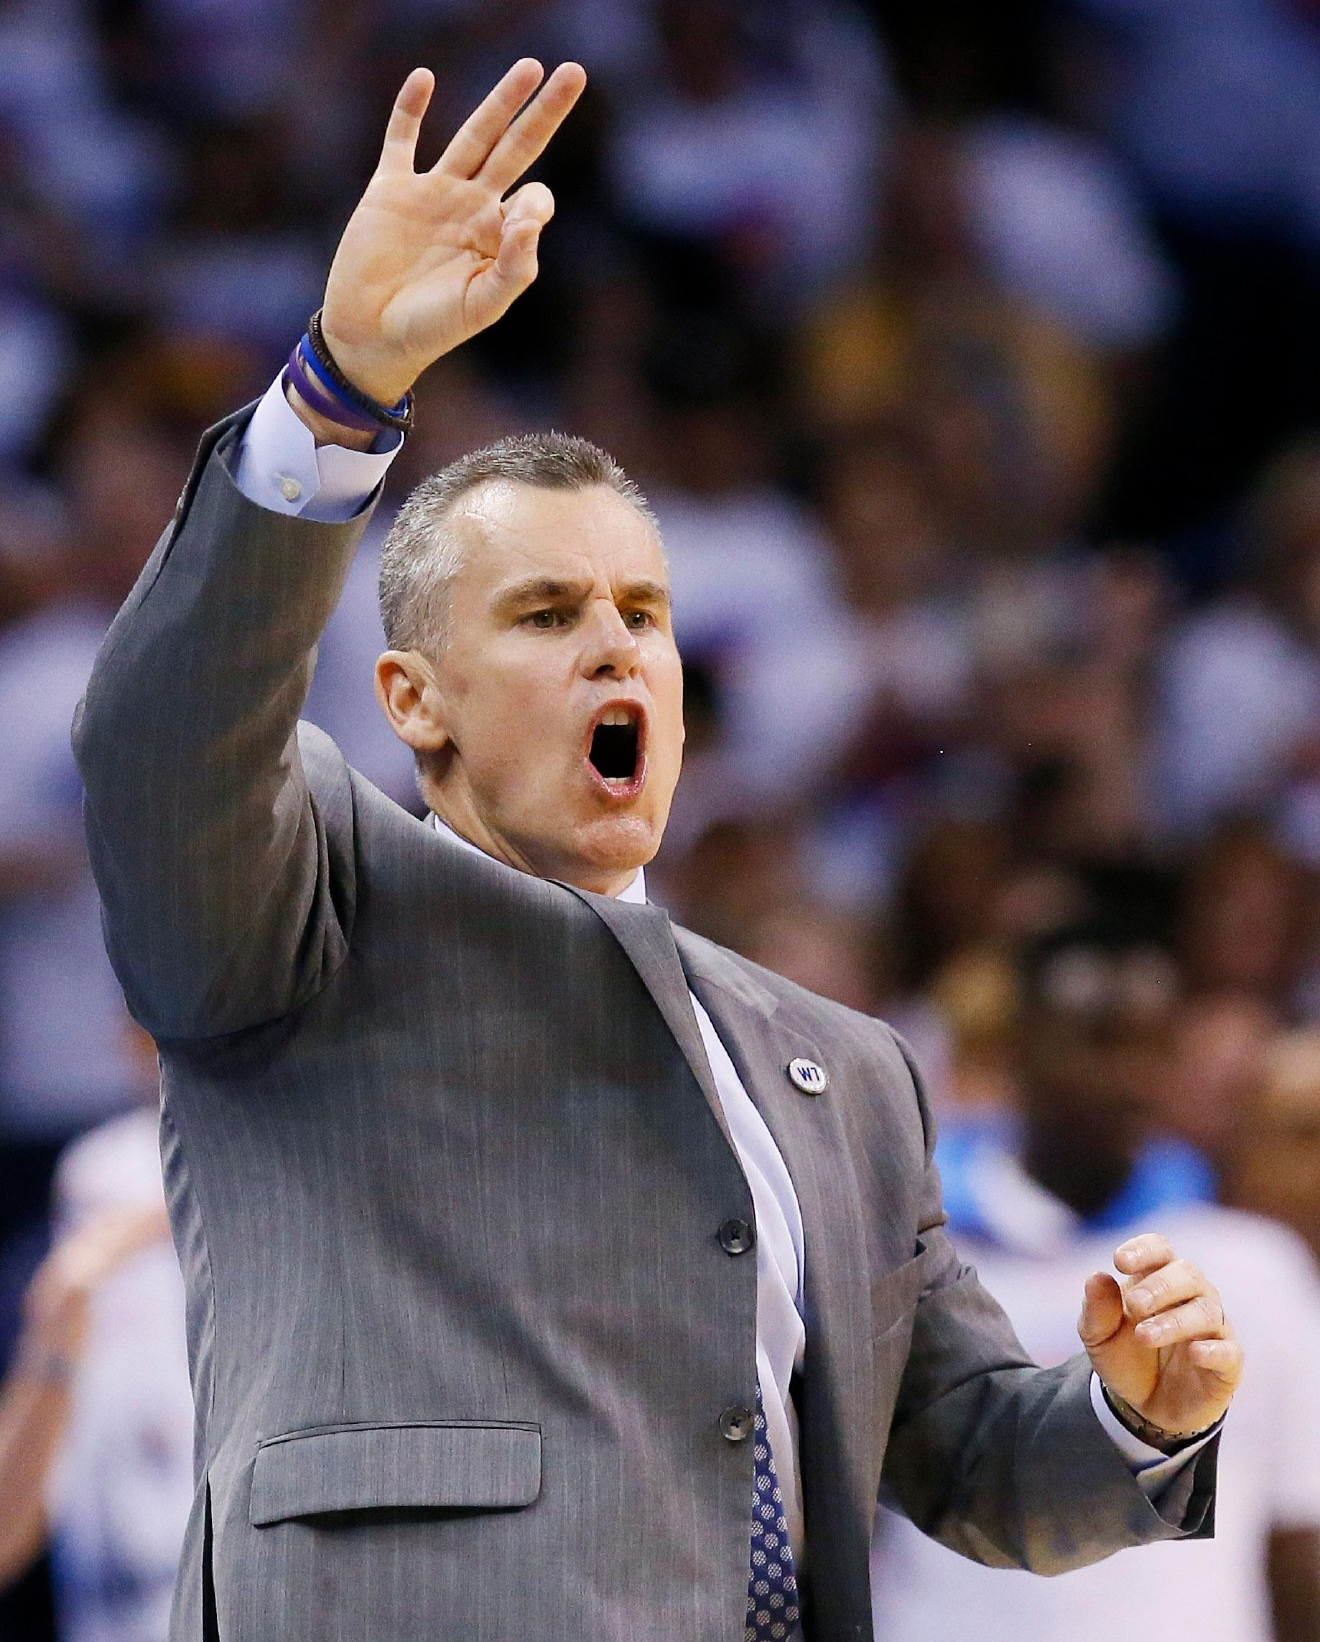 Oklahoma City Thunder head coach Billy Donovan makes a call against the Golden State Warriors during the second half in Game 4 of the NBA basketball Western Conference finals in Oklahoma City, Tuesday, May 24, 2016. (AP Photo/Sue Ogrocki)